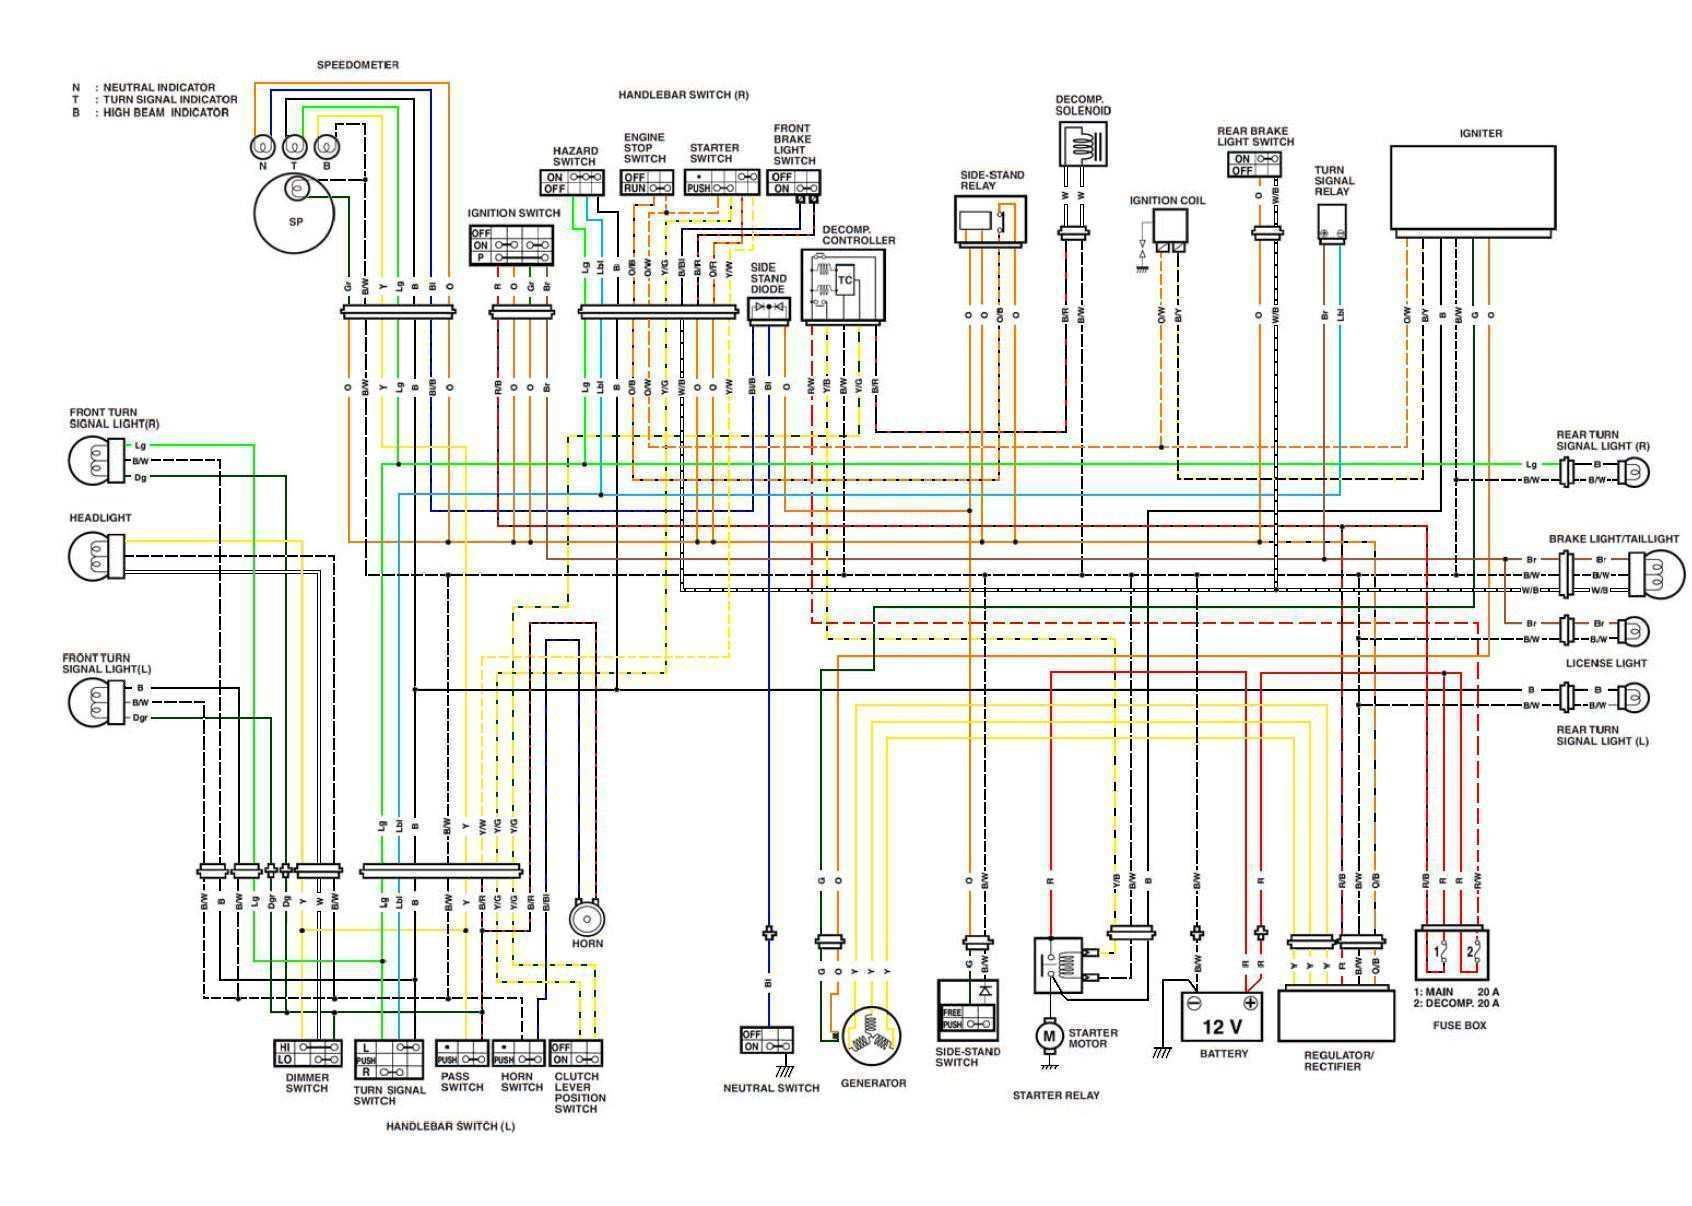 Charging System Wiring Diagram For Pt Cruiser Data Wiring Diagrams \u2022 2001  PT Cruiser Engine Diagram 2003 Pt Cruiser Fuse Diagram